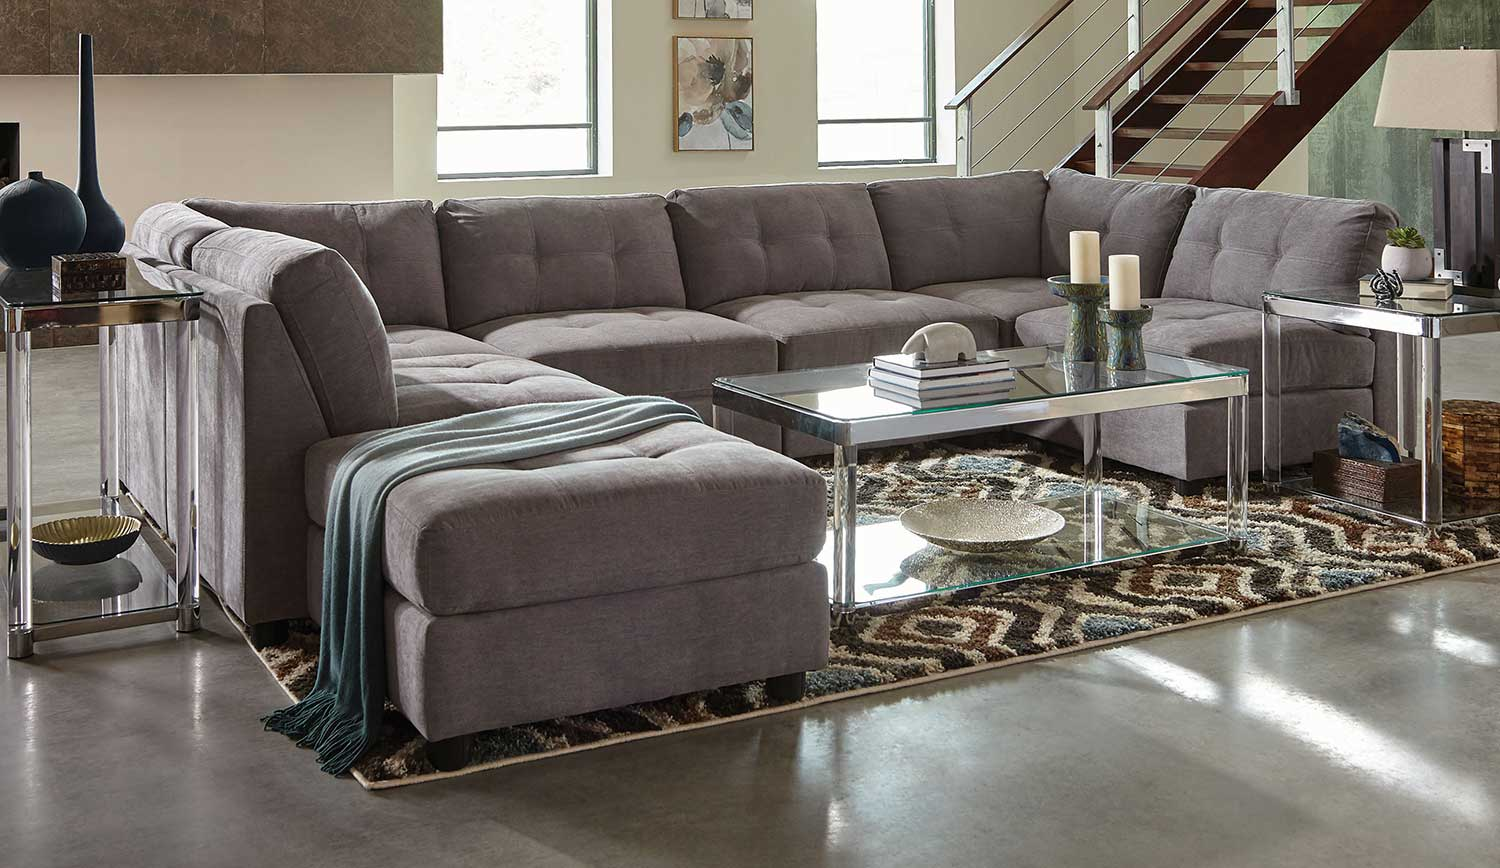 Coaster Claude Sectional Sofa Set - Dove : coaster sectional sofa - Sectionals, Sofas & Couches